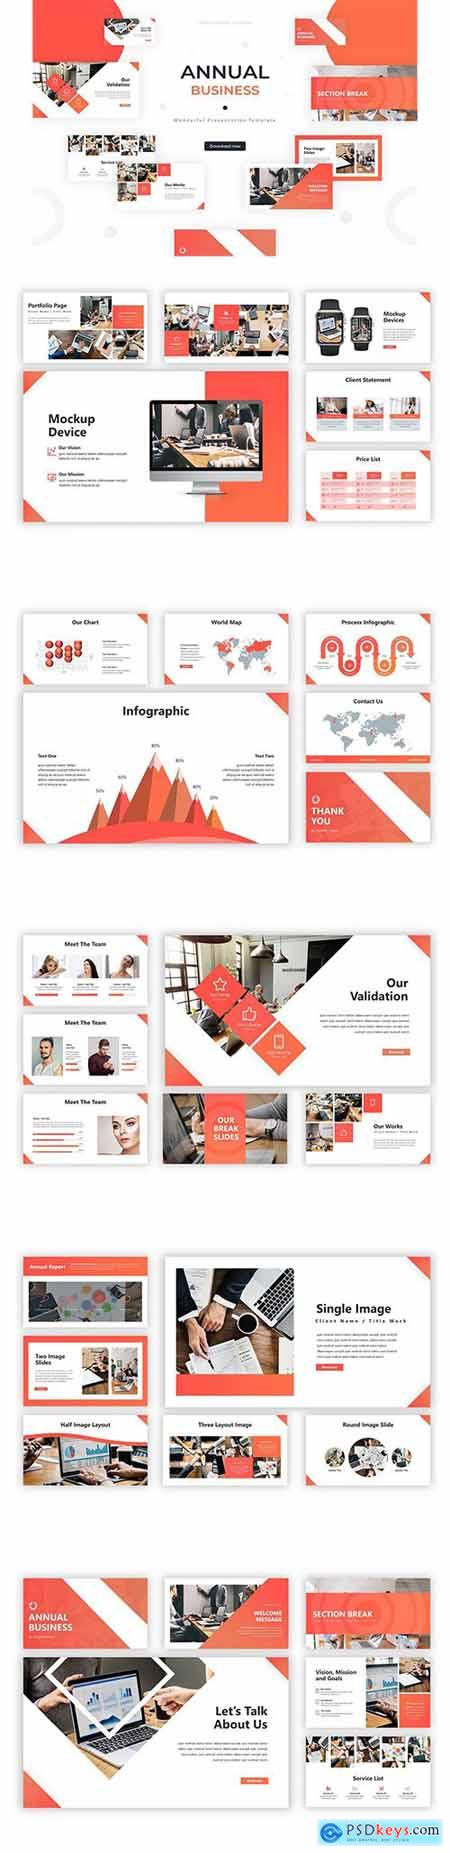 Annual Business - Powerpoint Template